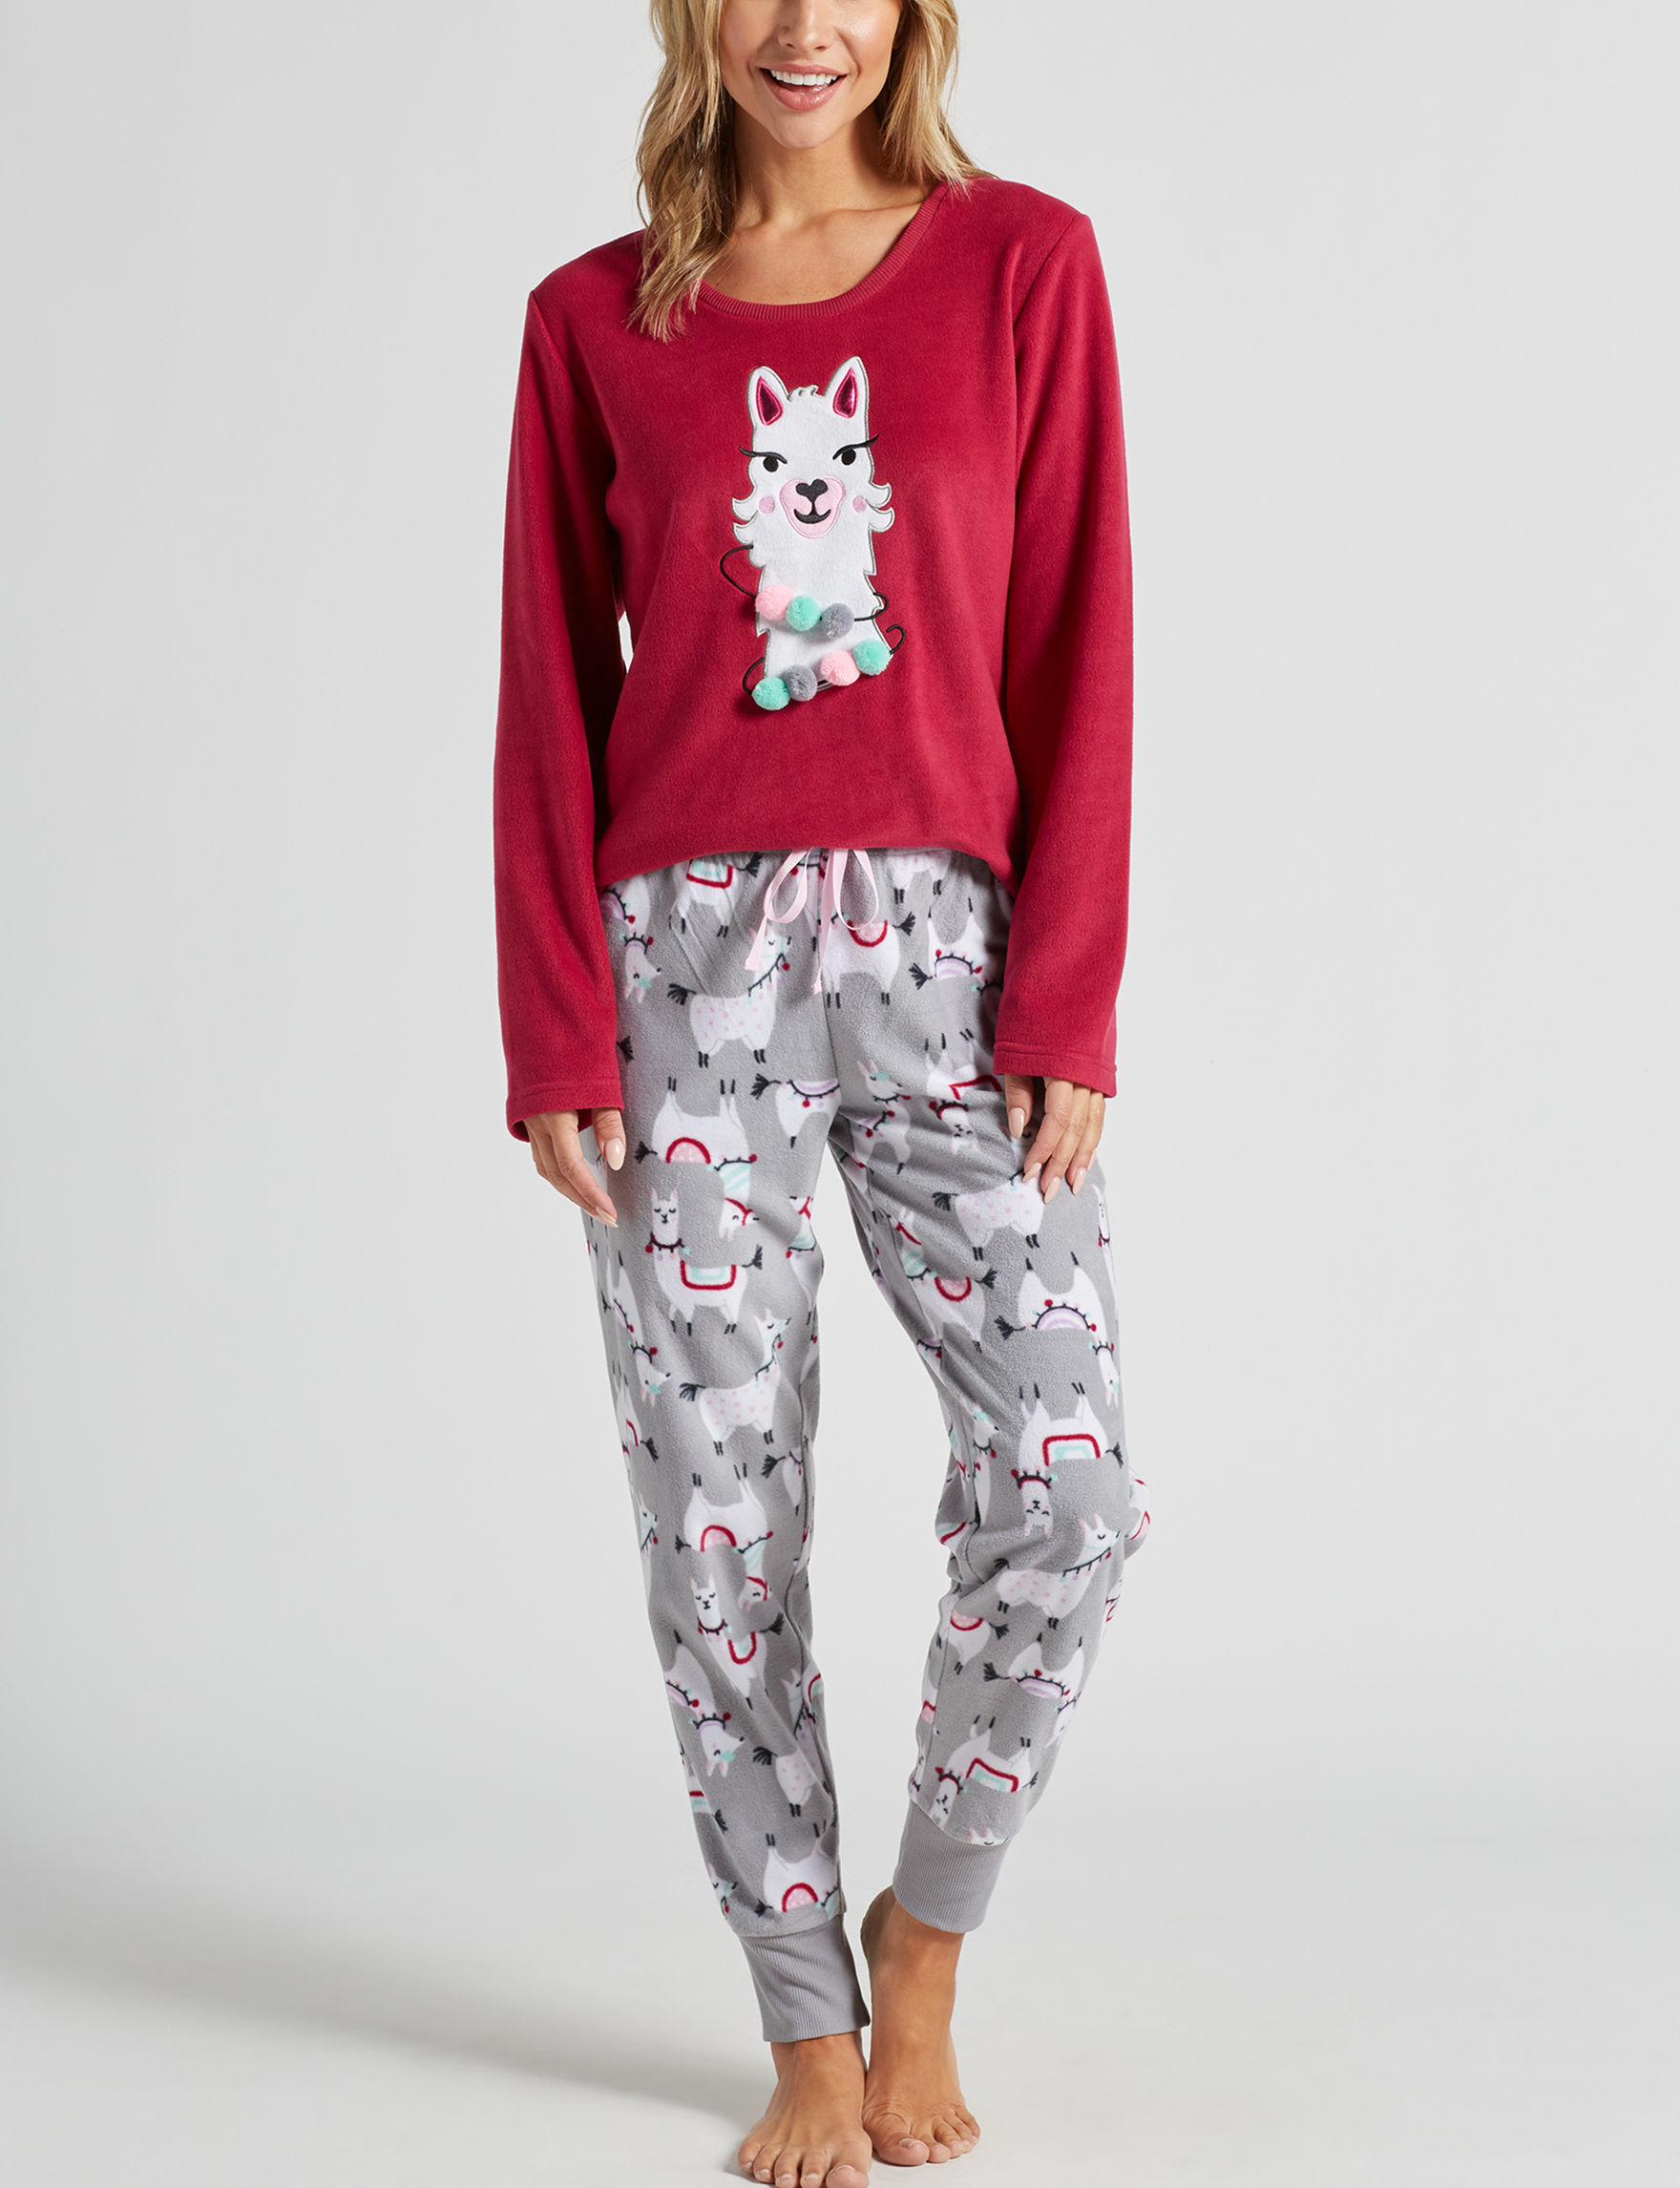 PJ Couture Berry Pajama Sets